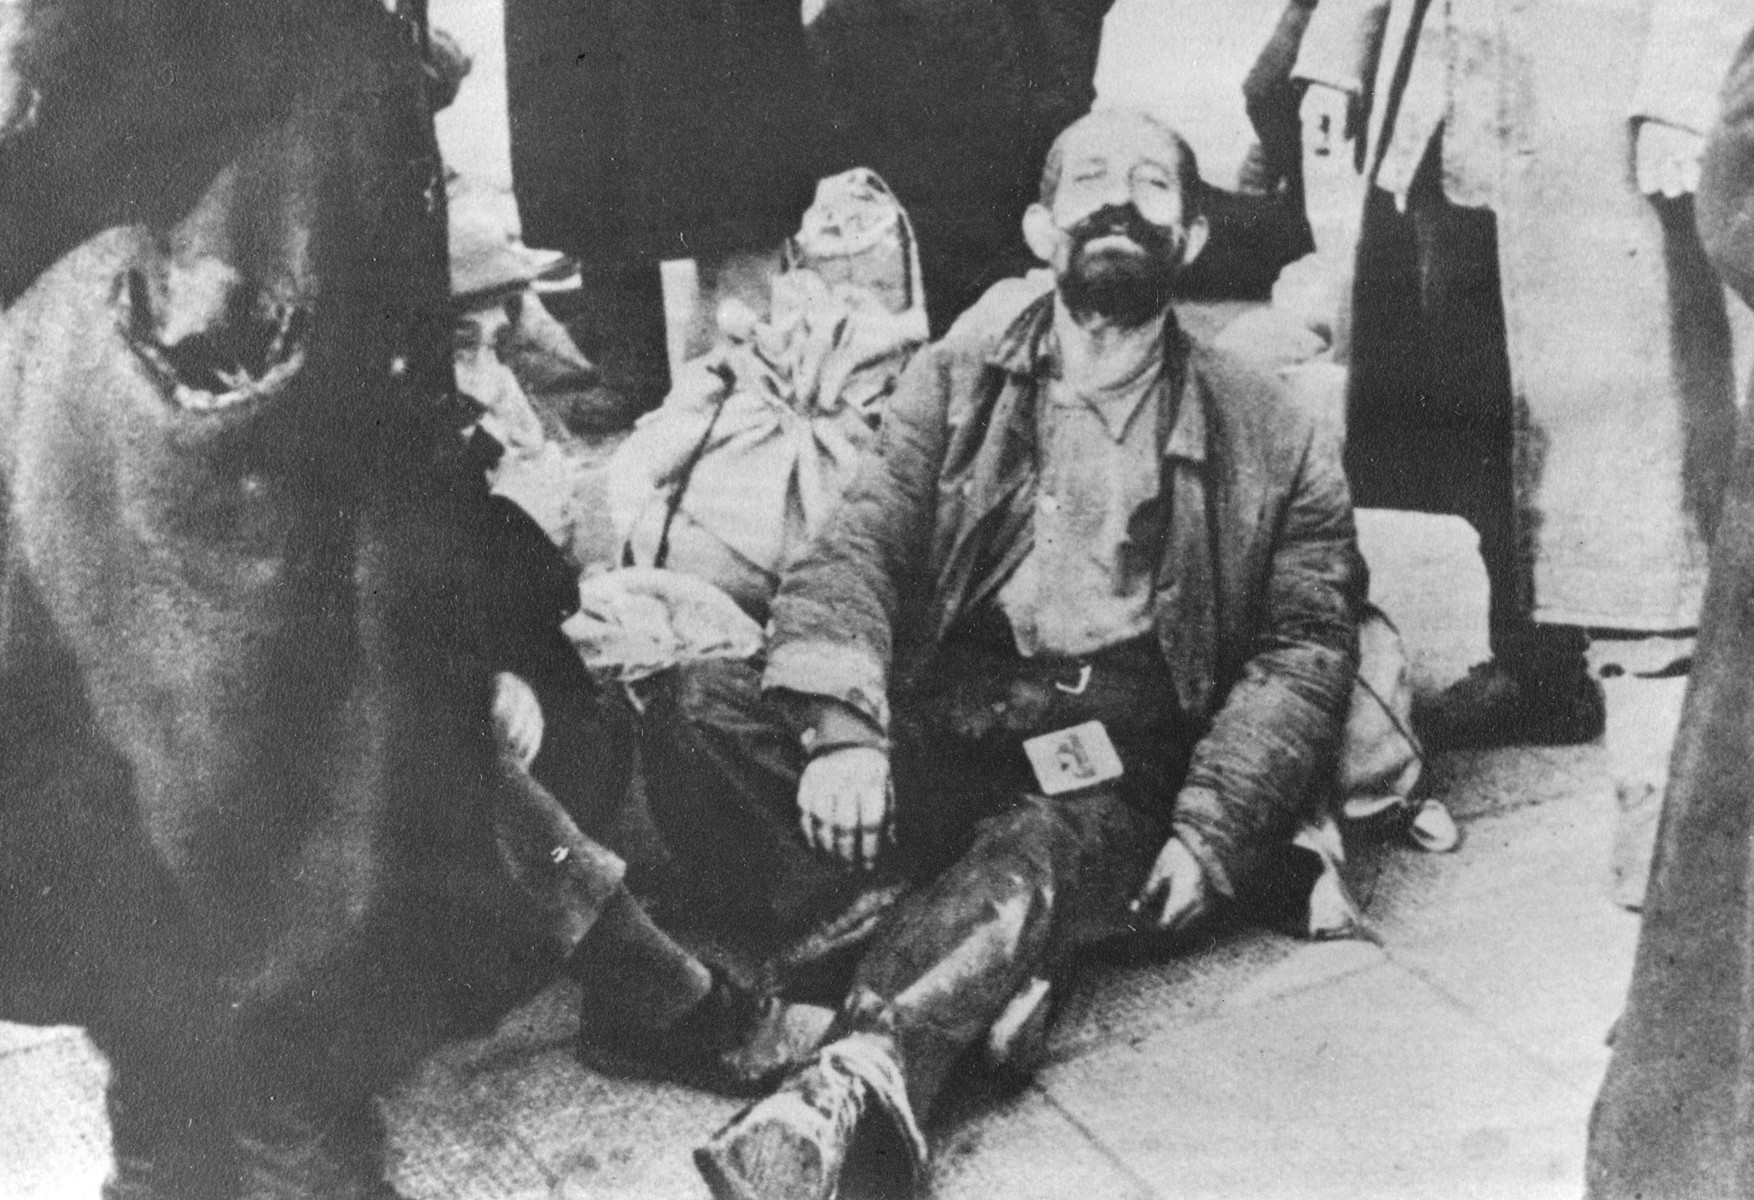 A destitute Jewish man sits on the pavement in an unidentified ghetto in Poland.